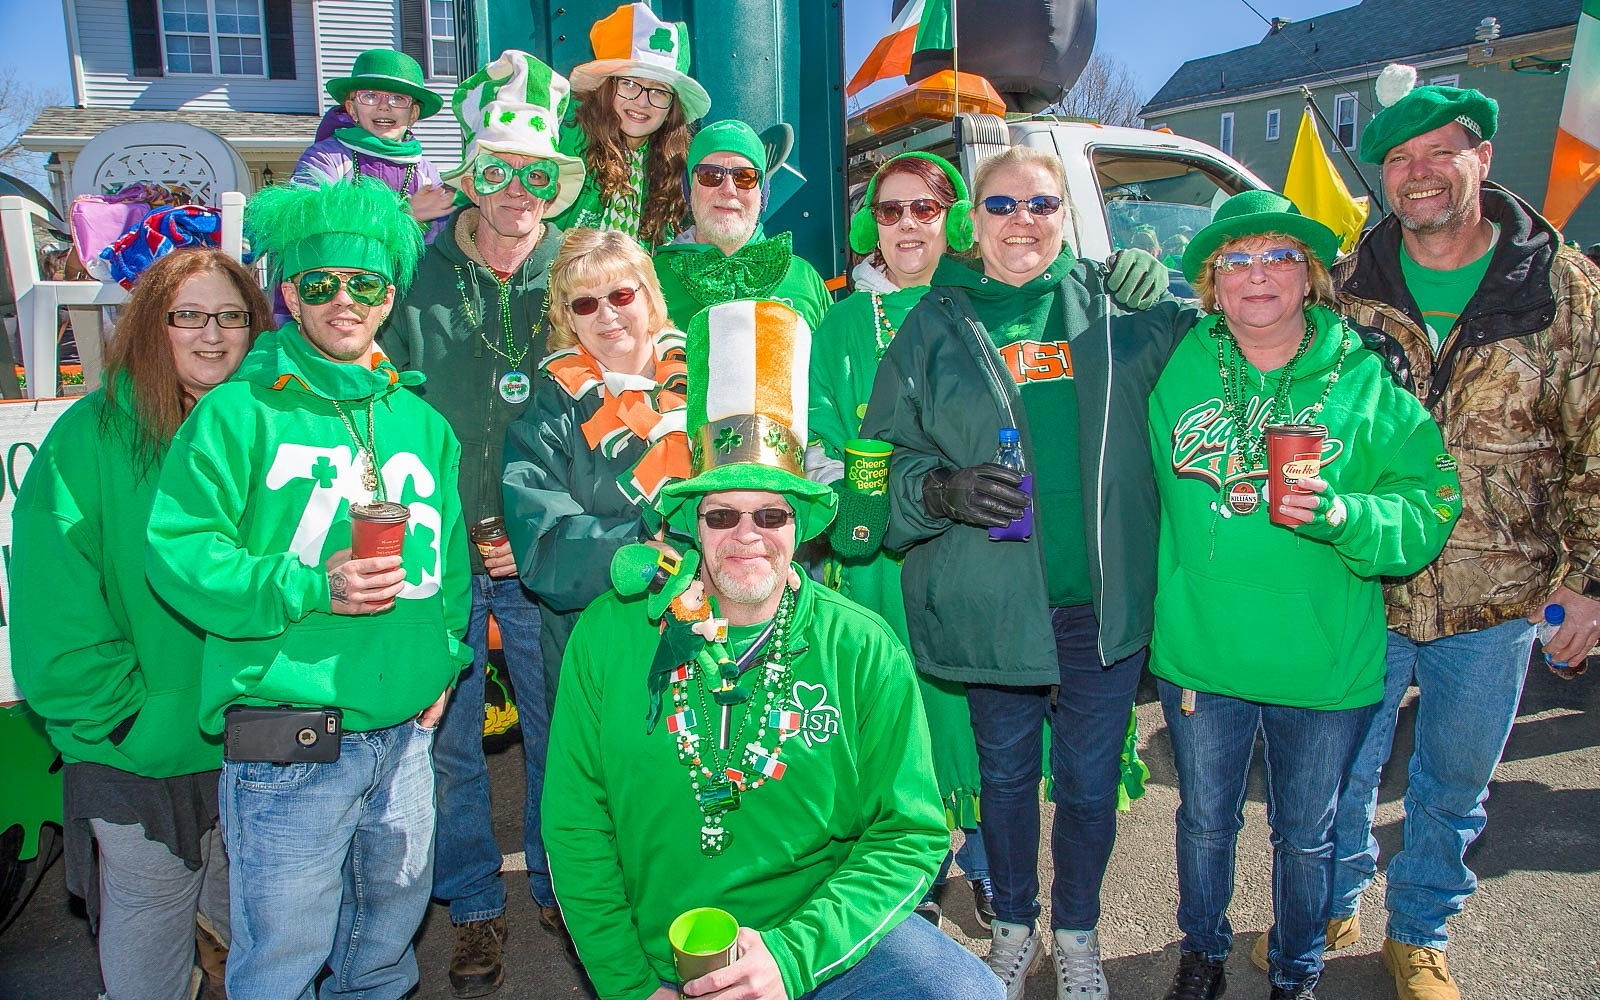 Buffalo loves everything about St. Patrick's Day, including the parades. (Don Nieman/Special to The News)